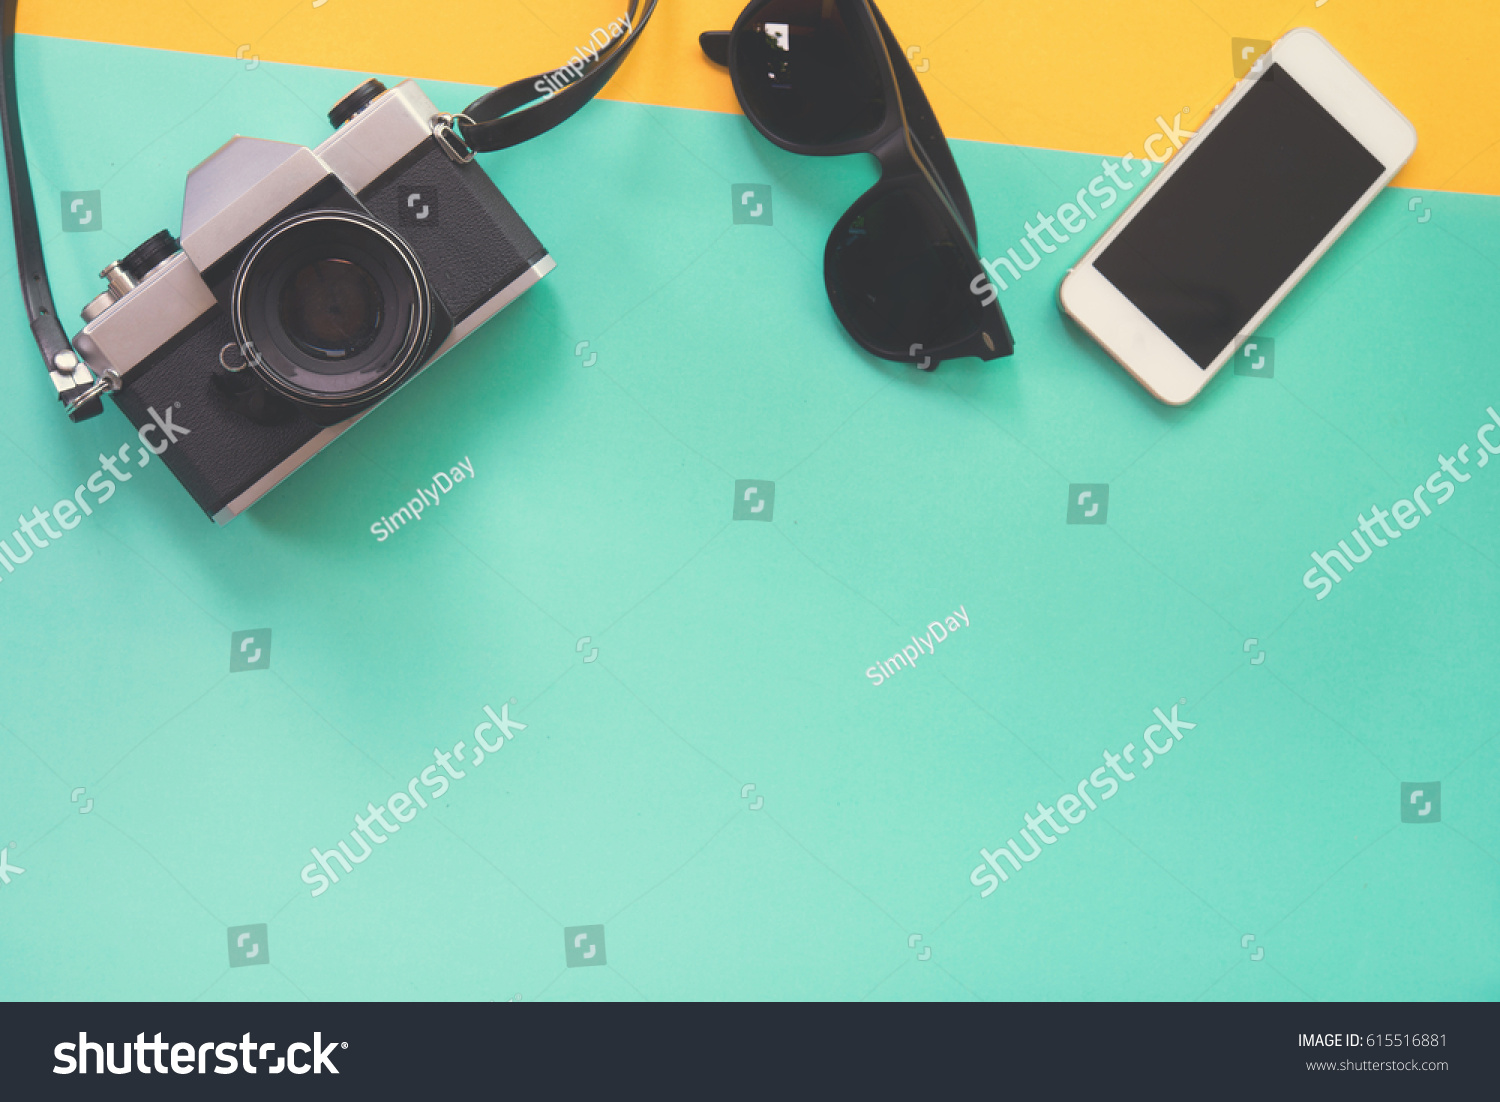 d1a33967fb1f Flat lay design of work desk with sunglasses old camera and smartphone on  green and yellow